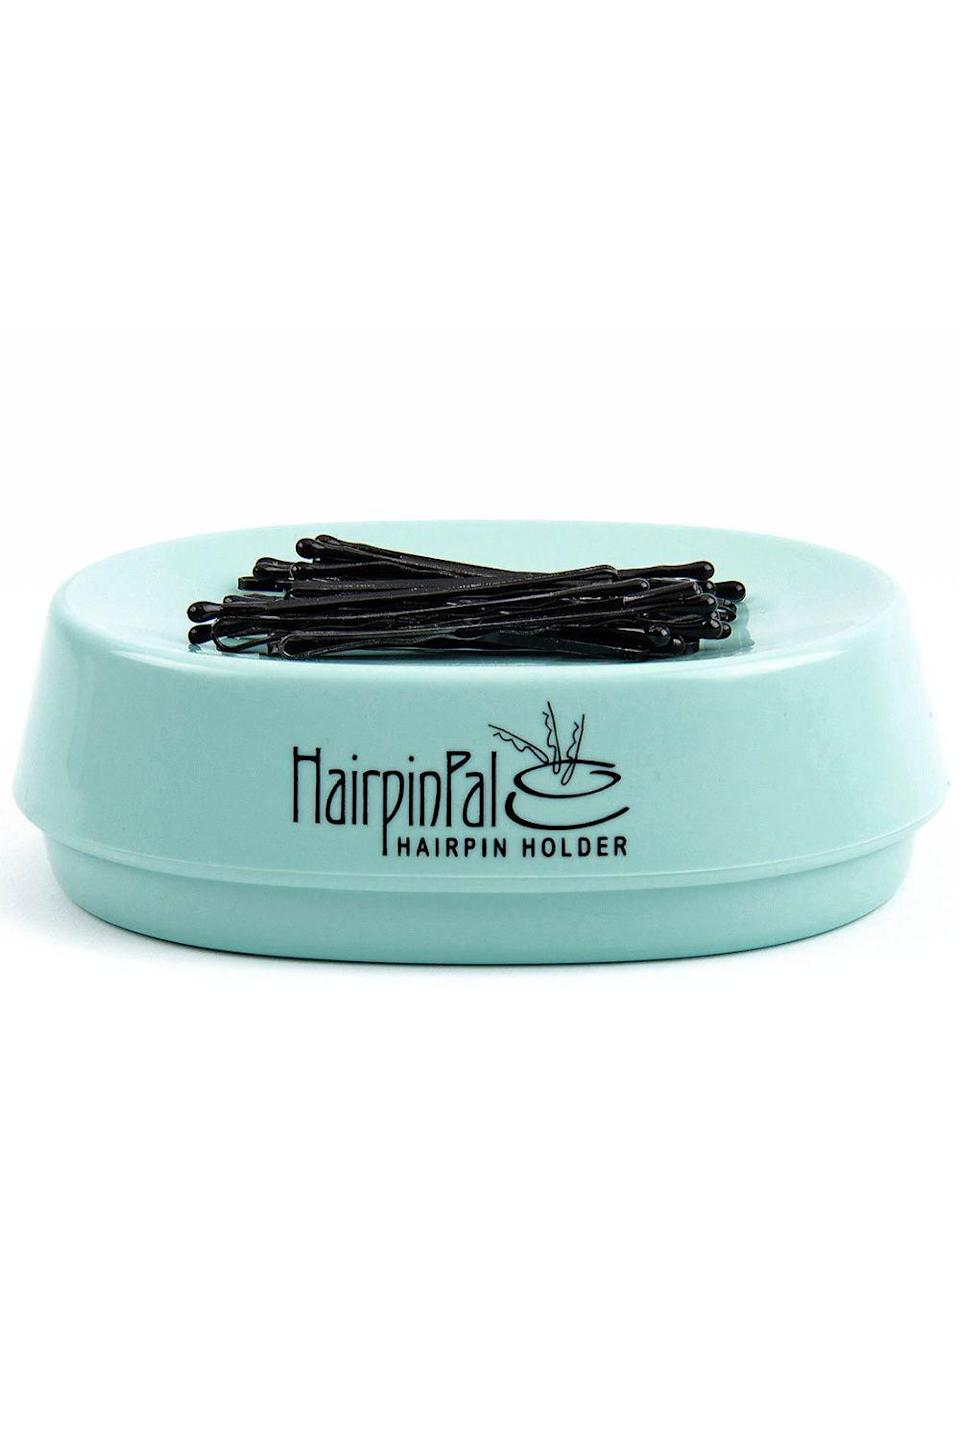 """<p><strong>HairpinPal</strong></p><p>amazon.com</p><p><strong>$14.98</strong></p><p><a href=""""https://www.amazon.com/dp/B00XZCTI7G?tag=syn-yahoo-20&ascsubtag=%5Bartid%7C10049.g.33904719%5Bsrc%7Cyahoo-us"""" rel=""""nofollow noopener"""" target=""""_blank"""" data-ylk=""""slk:shop"""" class=""""link rapid-noclick-resp"""">shop</a></p><p>This lil magnet tray will make sure that your <a href=""""https://www.cosmopolitan.com/style-beauty/beauty/advice/a6123/life-changing-bobby-pin-tricks/"""" rel=""""nofollow noopener"""" target=""""_blank"""" data-ylk=""""slk:bobby pins"""" class=""""link rapid-noclick-resp"""">bobby pins</a> never run off and go missing ever again—as long as you remember to put them back on top of it, of course.</p>"""